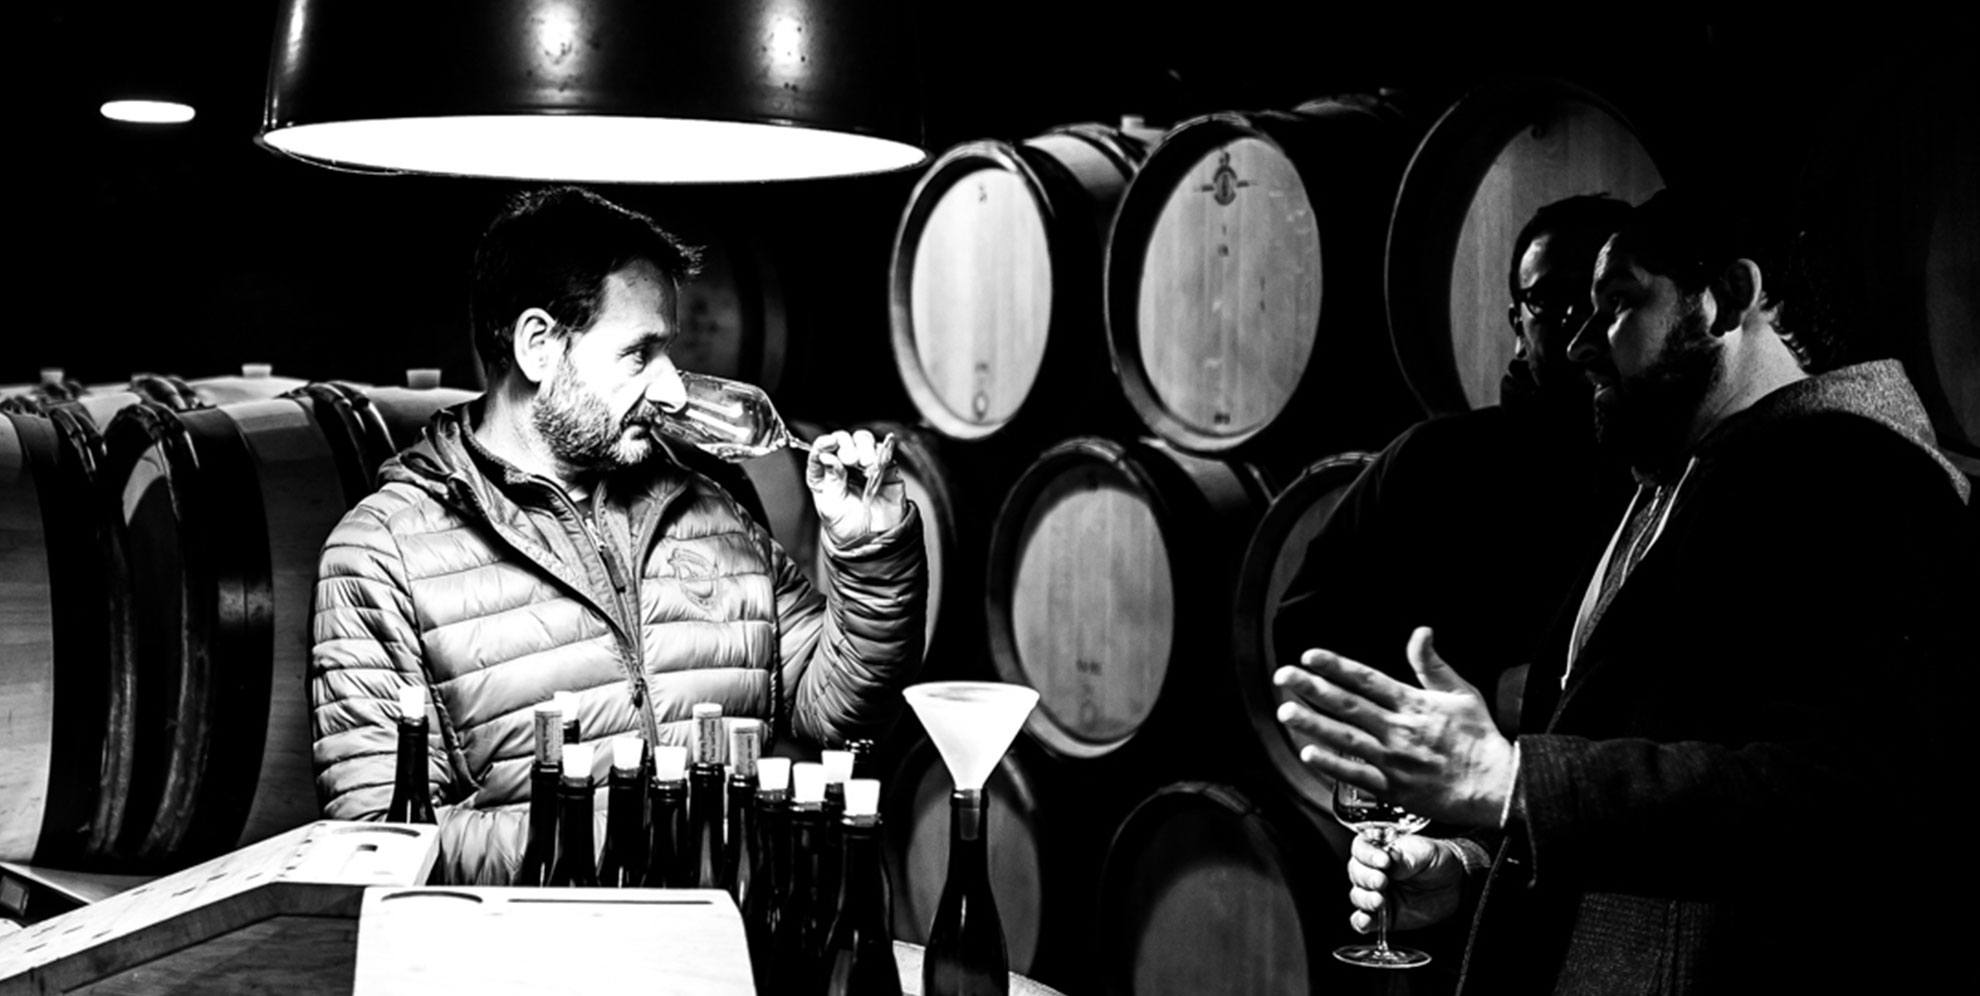 Jean-Marc Roulot at his cellar in Meursault. © Michael Sager